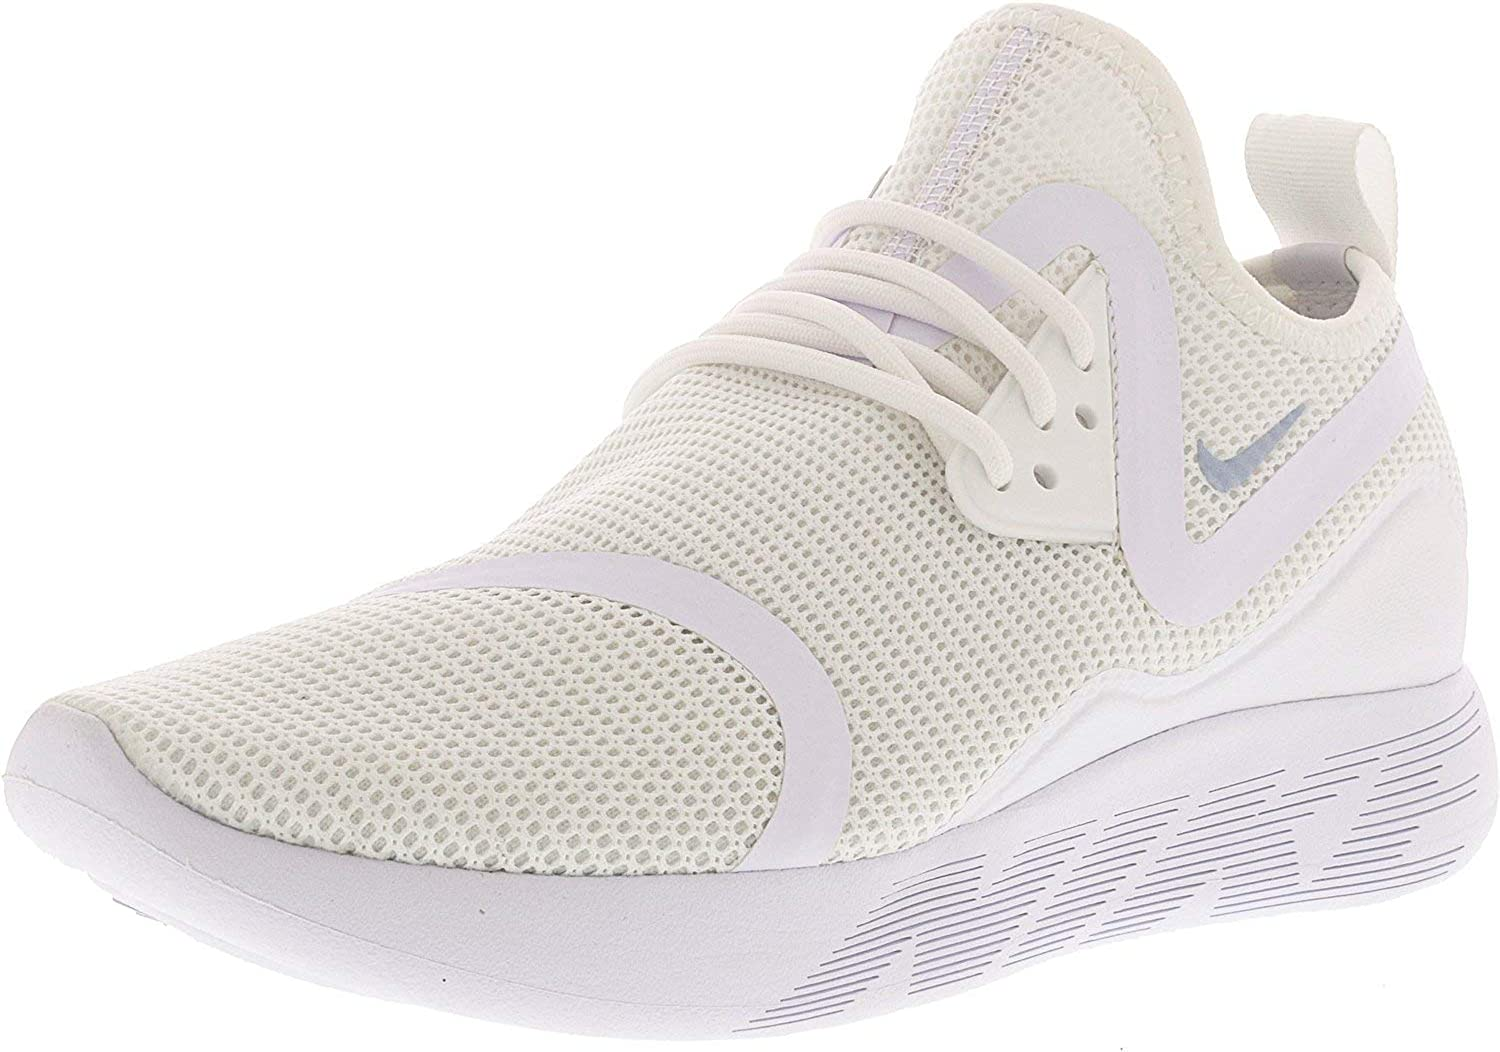 Nike Women's Lunarcharge Br Ankle-High Running Shoe